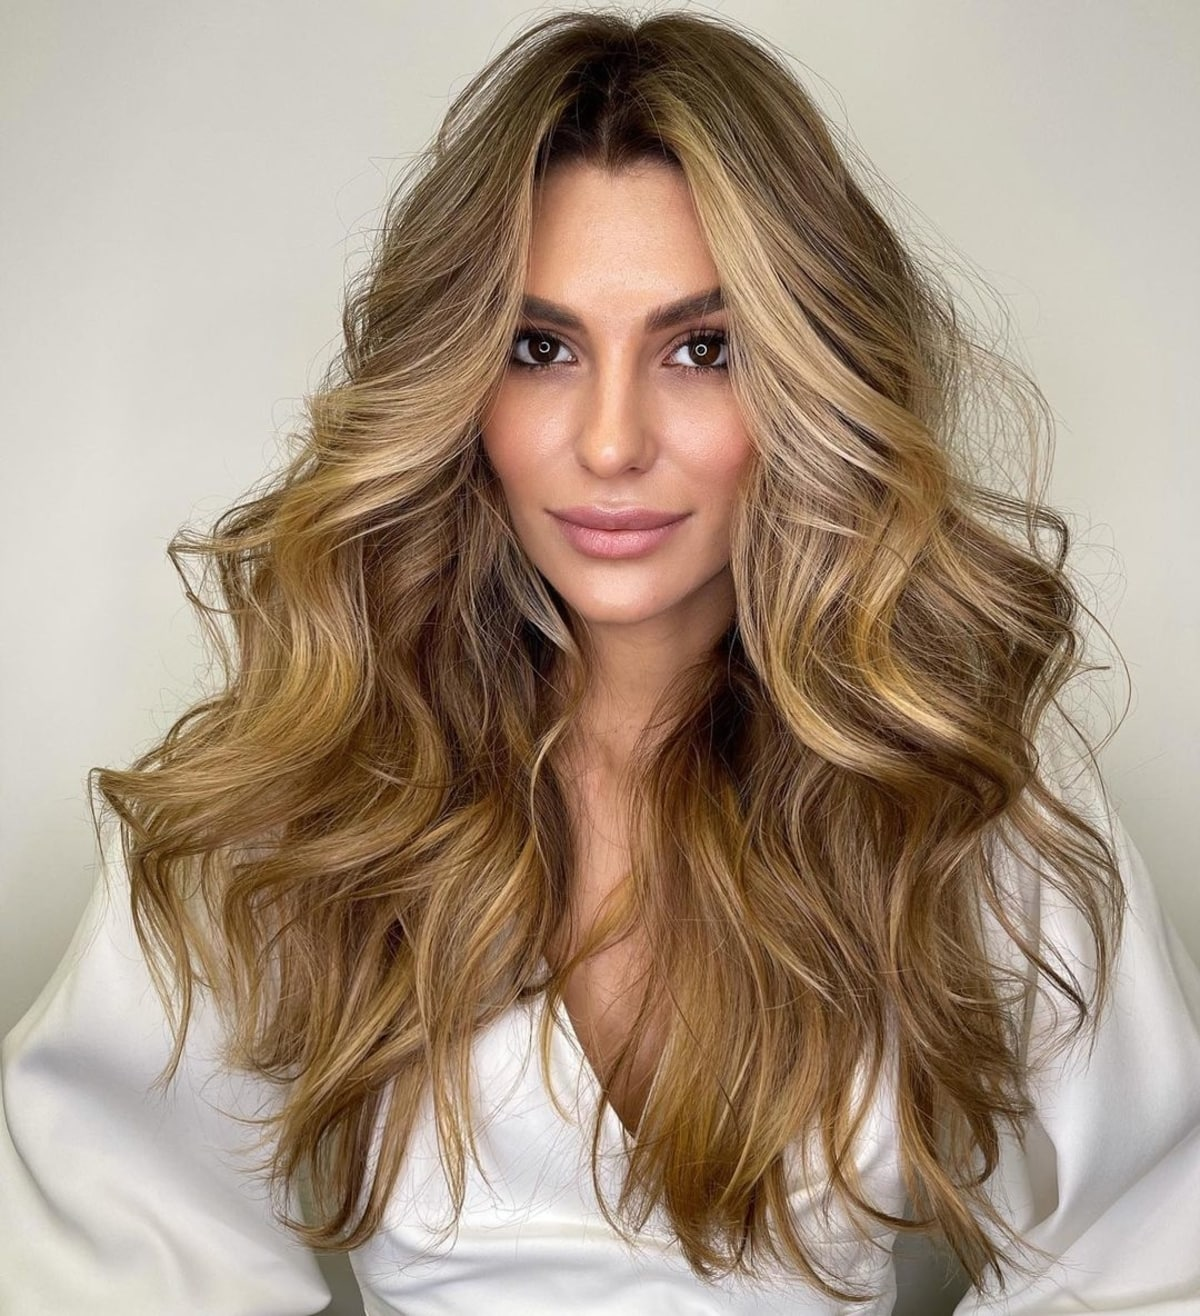 12 Flattering Middle Part Hairstyles Trending for 2012